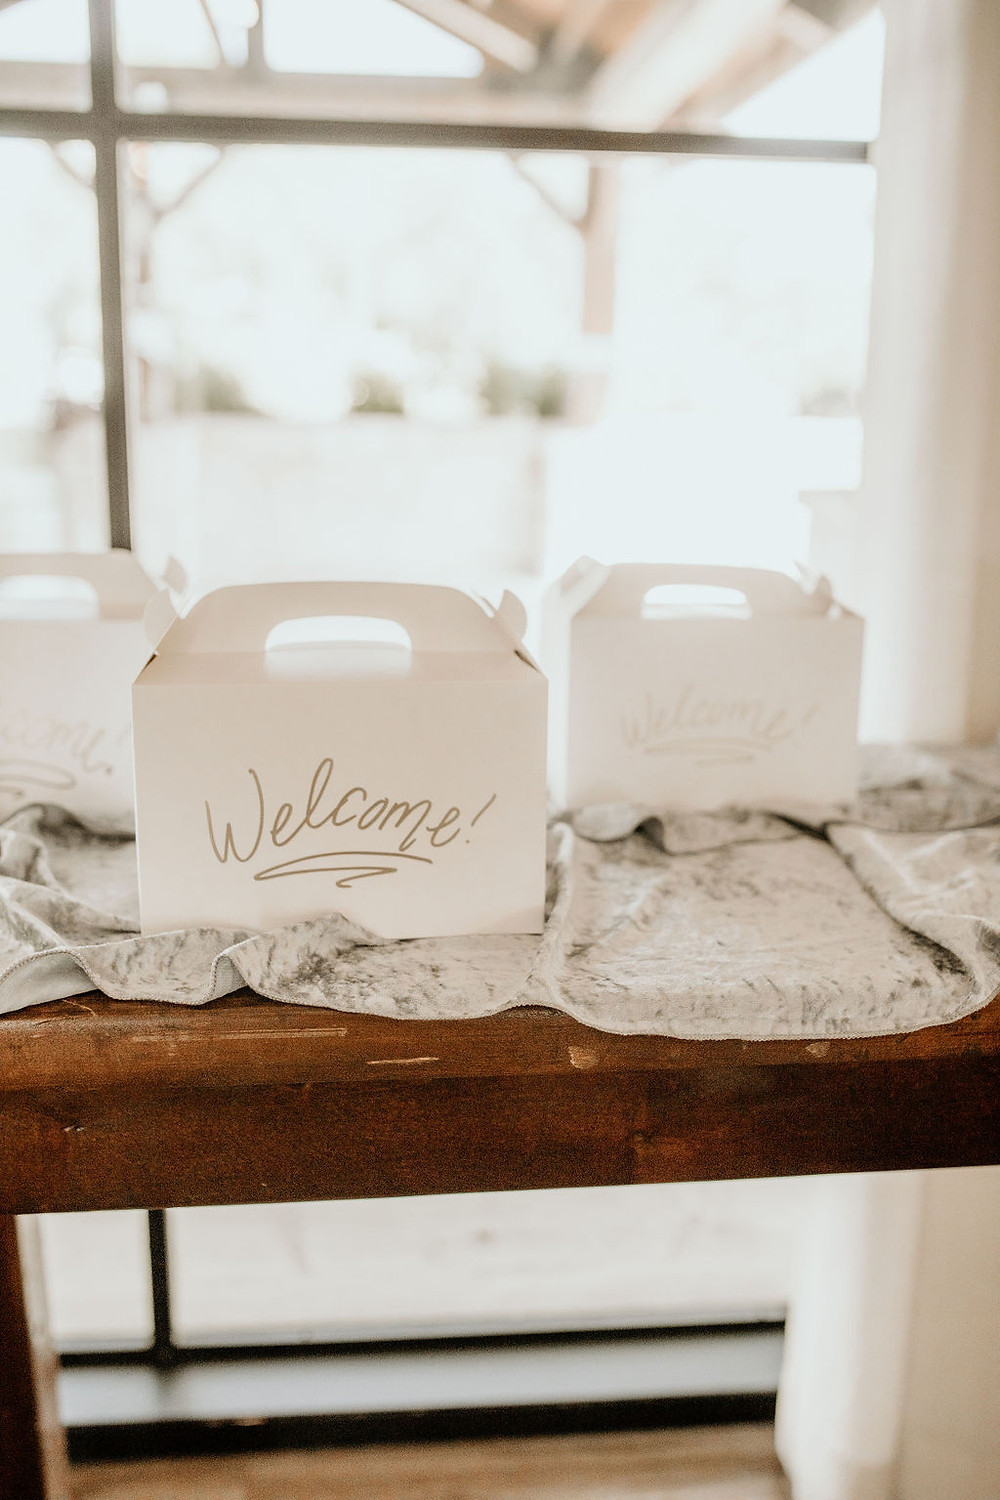 Wedding welcome bags on display in wedding venue on wooden farm table.